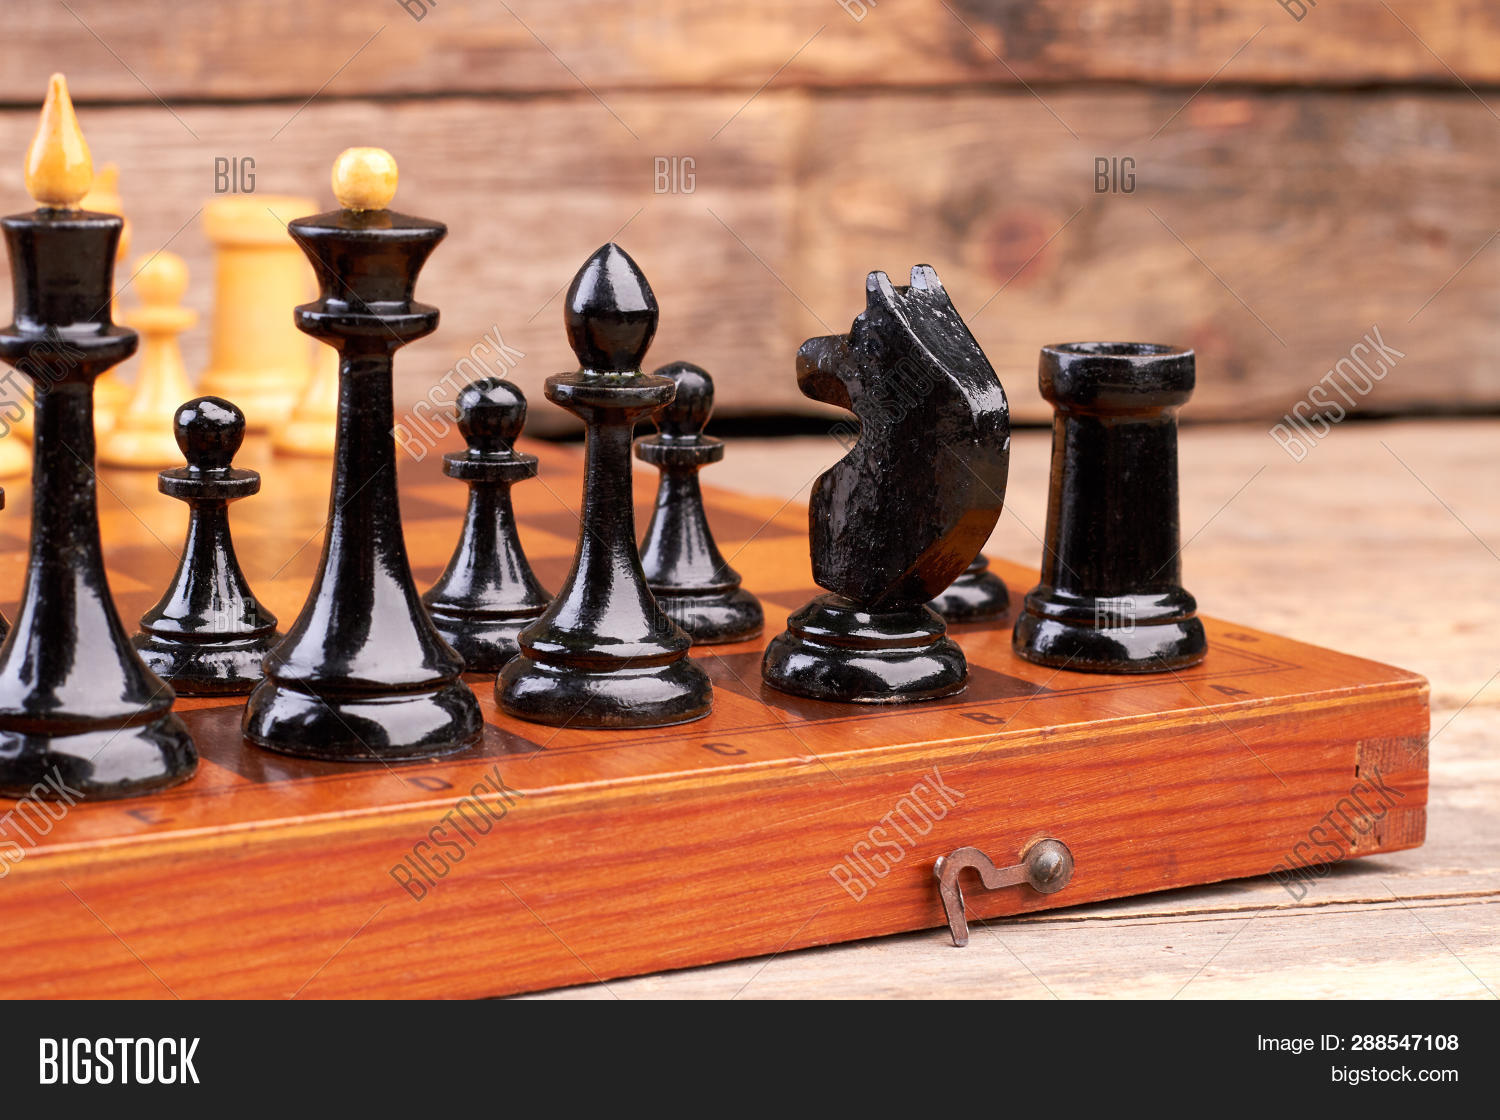 Black Chess Pieces On Image Photo Free Trial Bigstock